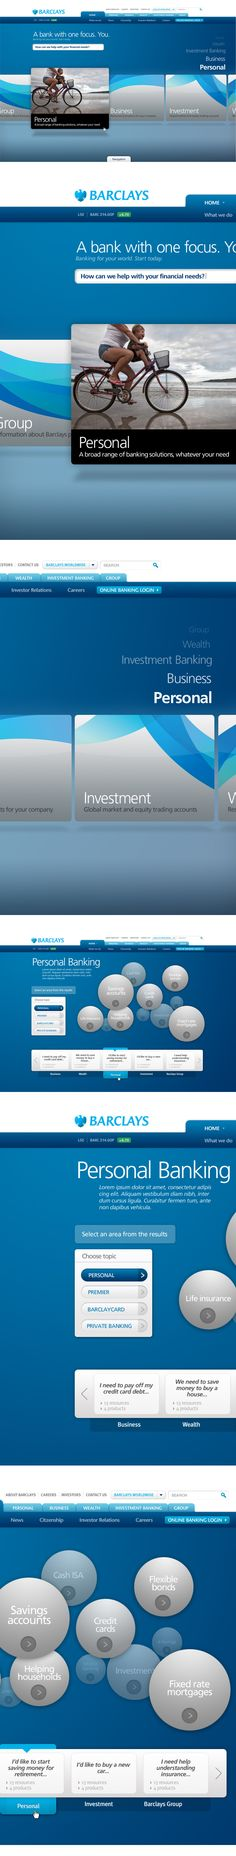 Barclays.com by Thomas Moeller, via Behance